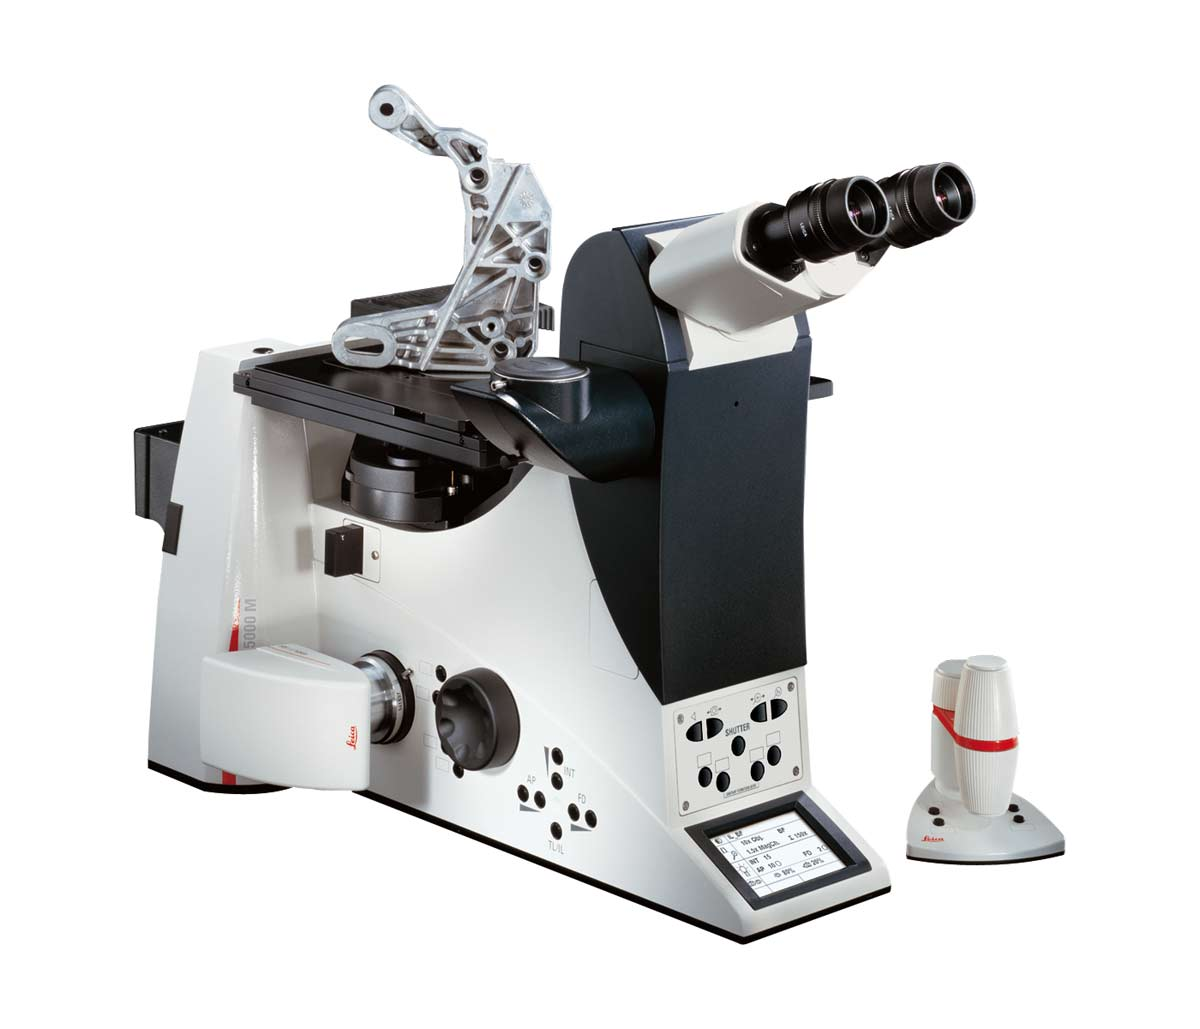 The complete Leica DMI5000 system, including microscope, camera, and software, provides a seamless, harmonious solution for materials testing and quality control.